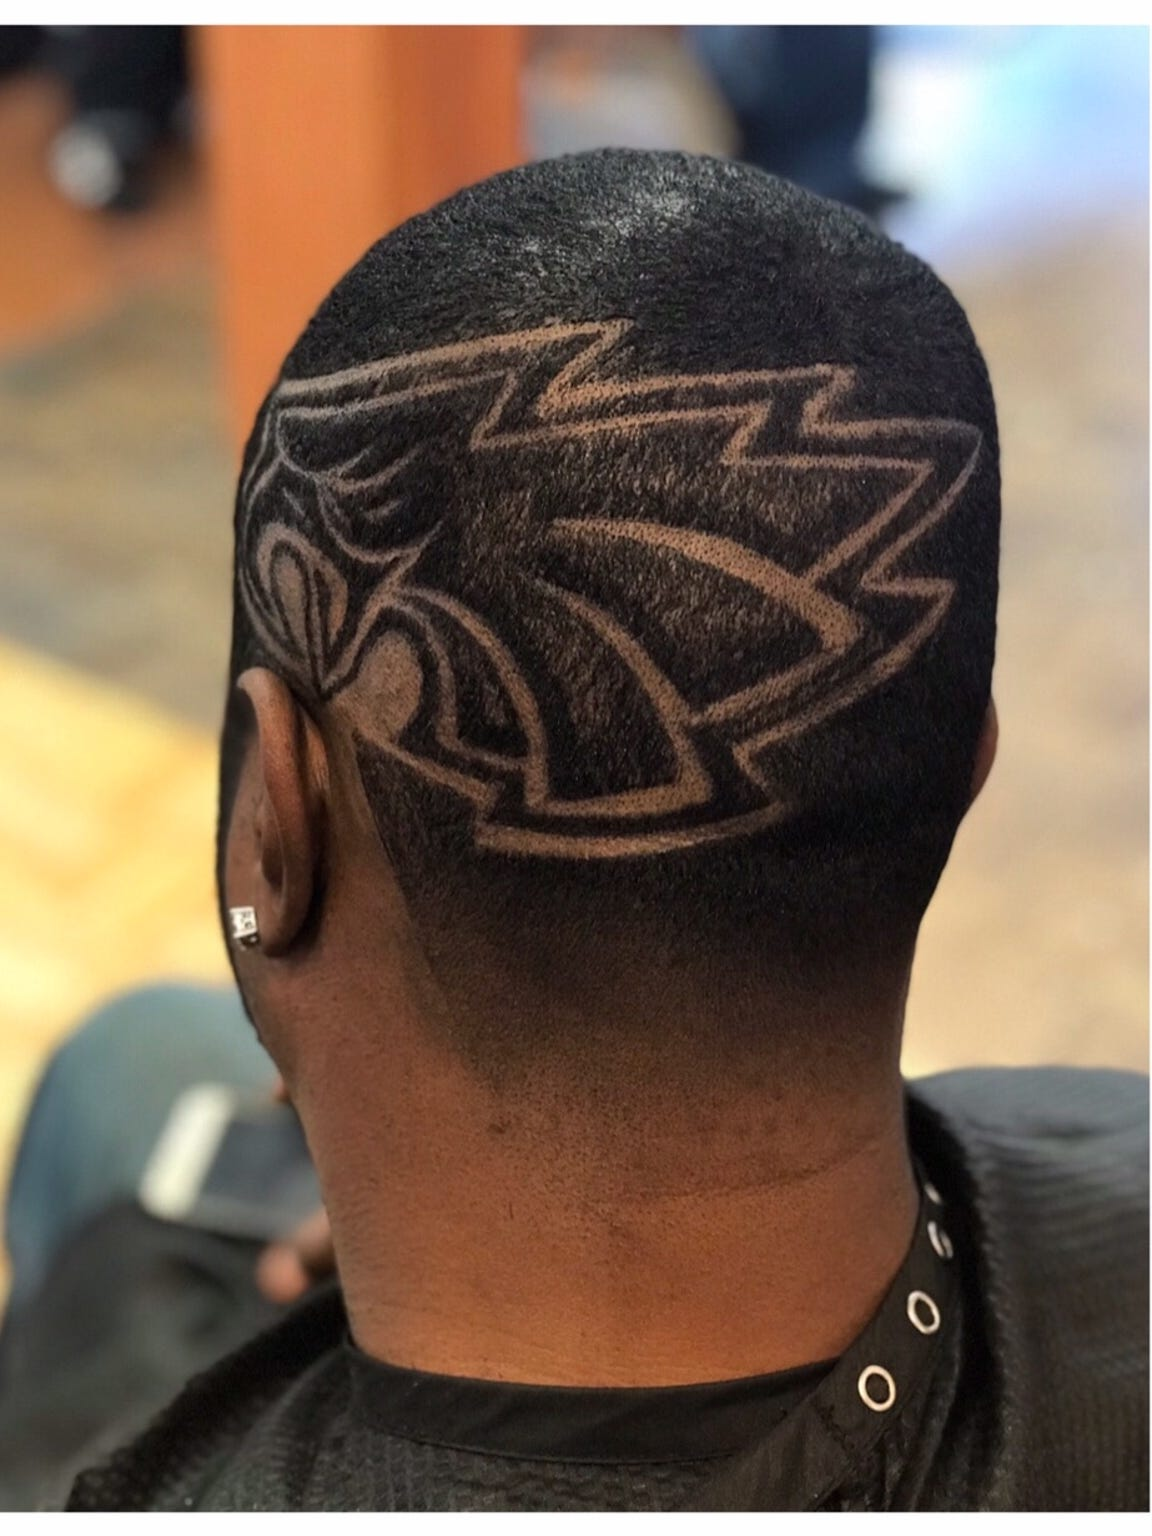 Curt Dudley shows off his Eagles-related hair design crafted by Jonathan Oliphant, owner and operator of The Hair Factory in Burlington City.